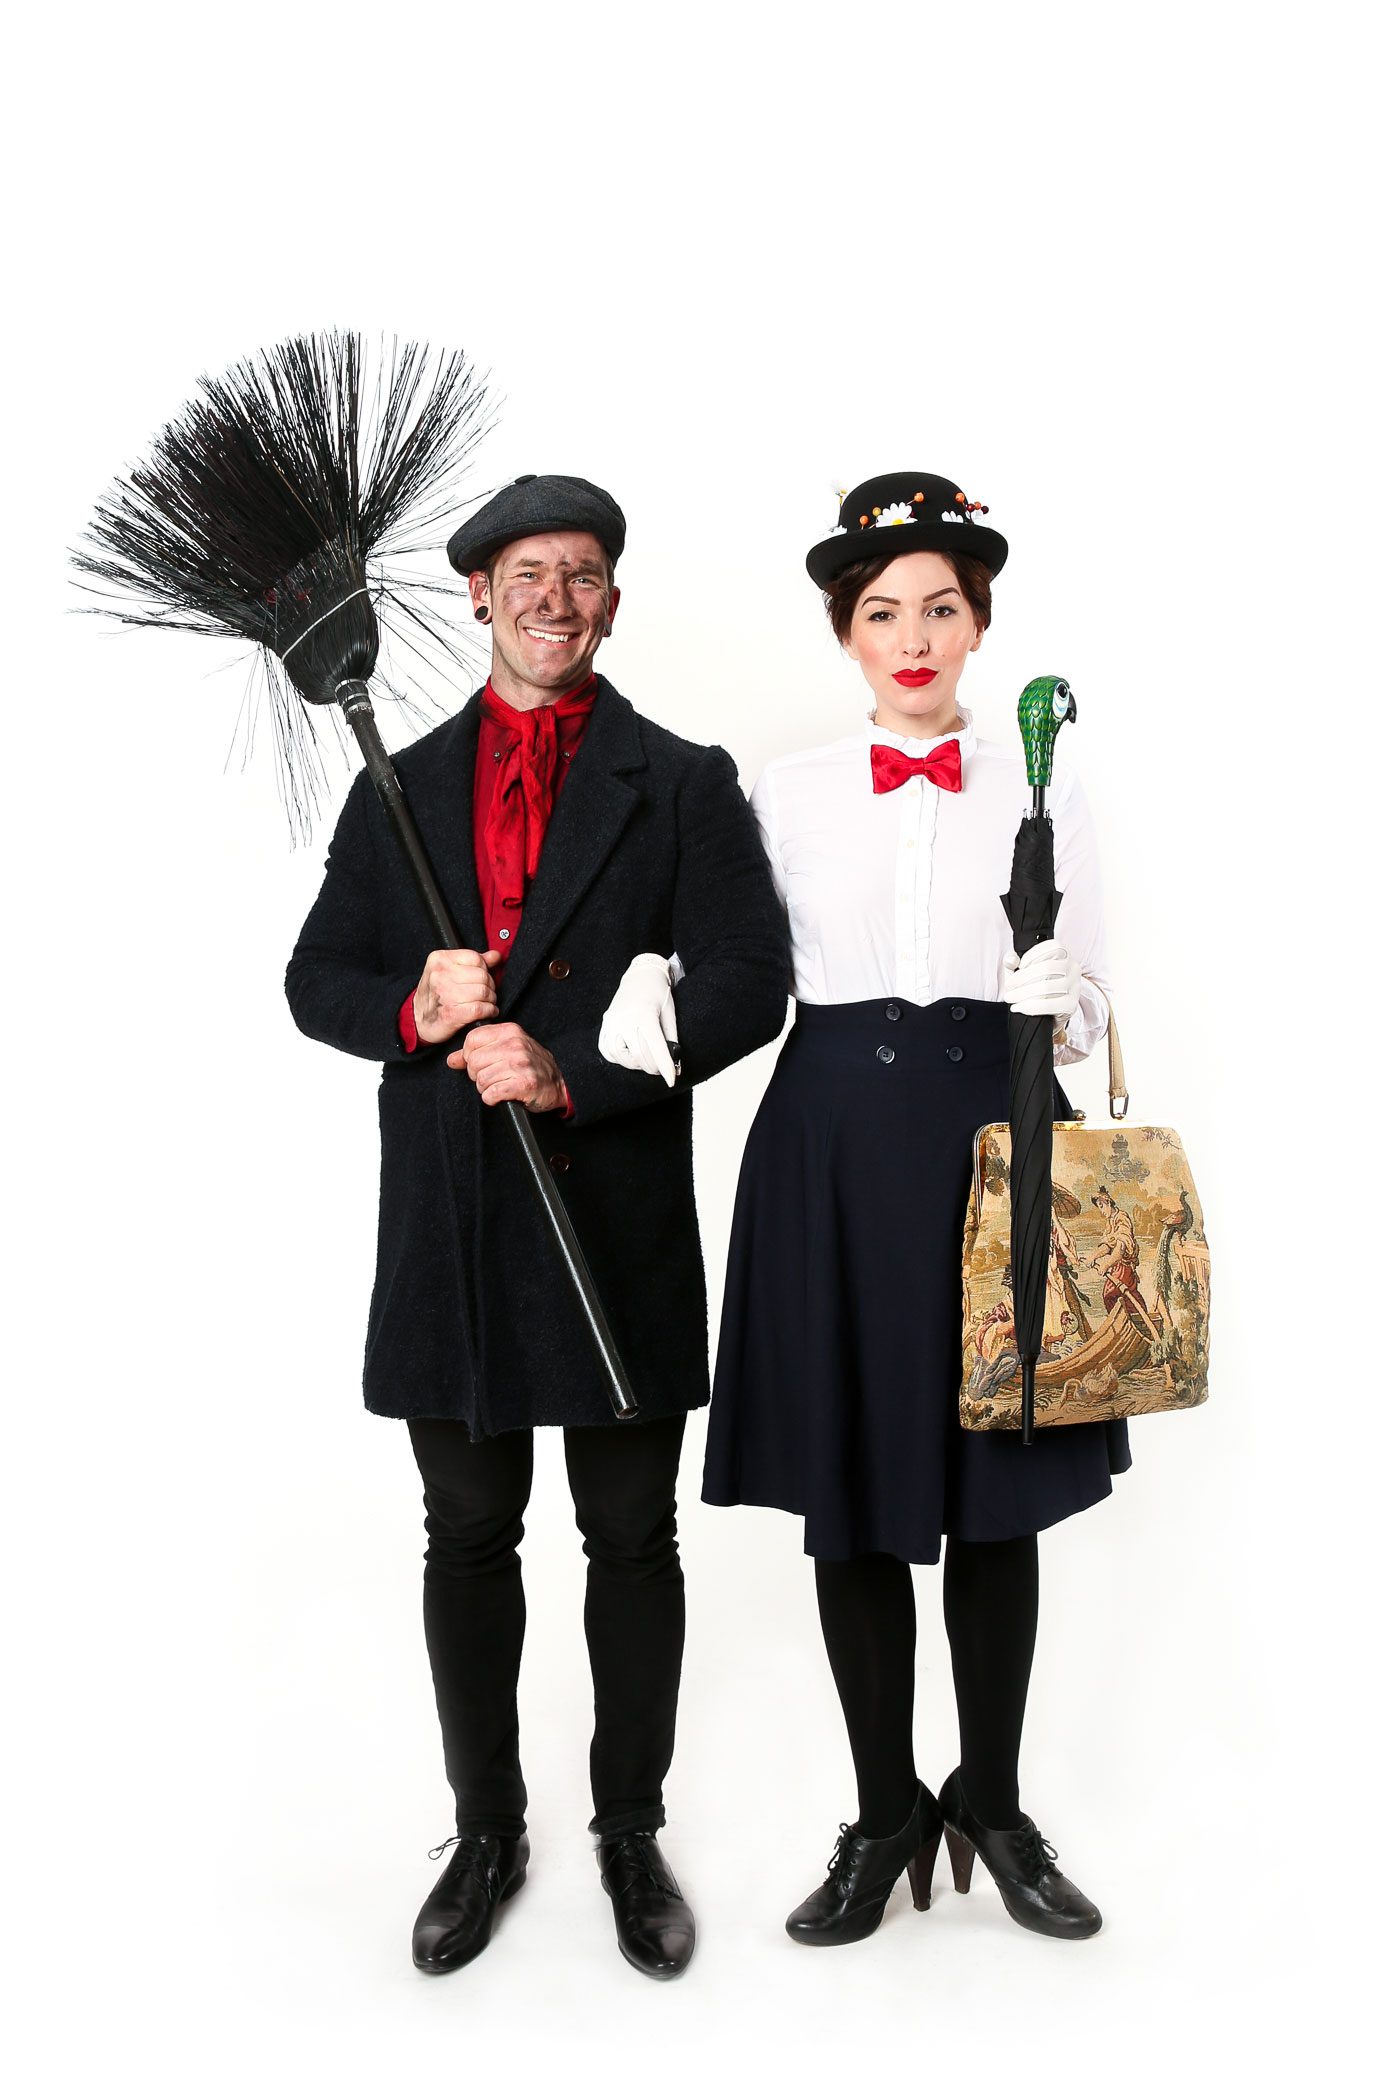 mary poppins costume, bert costume: halloween couples costume idea